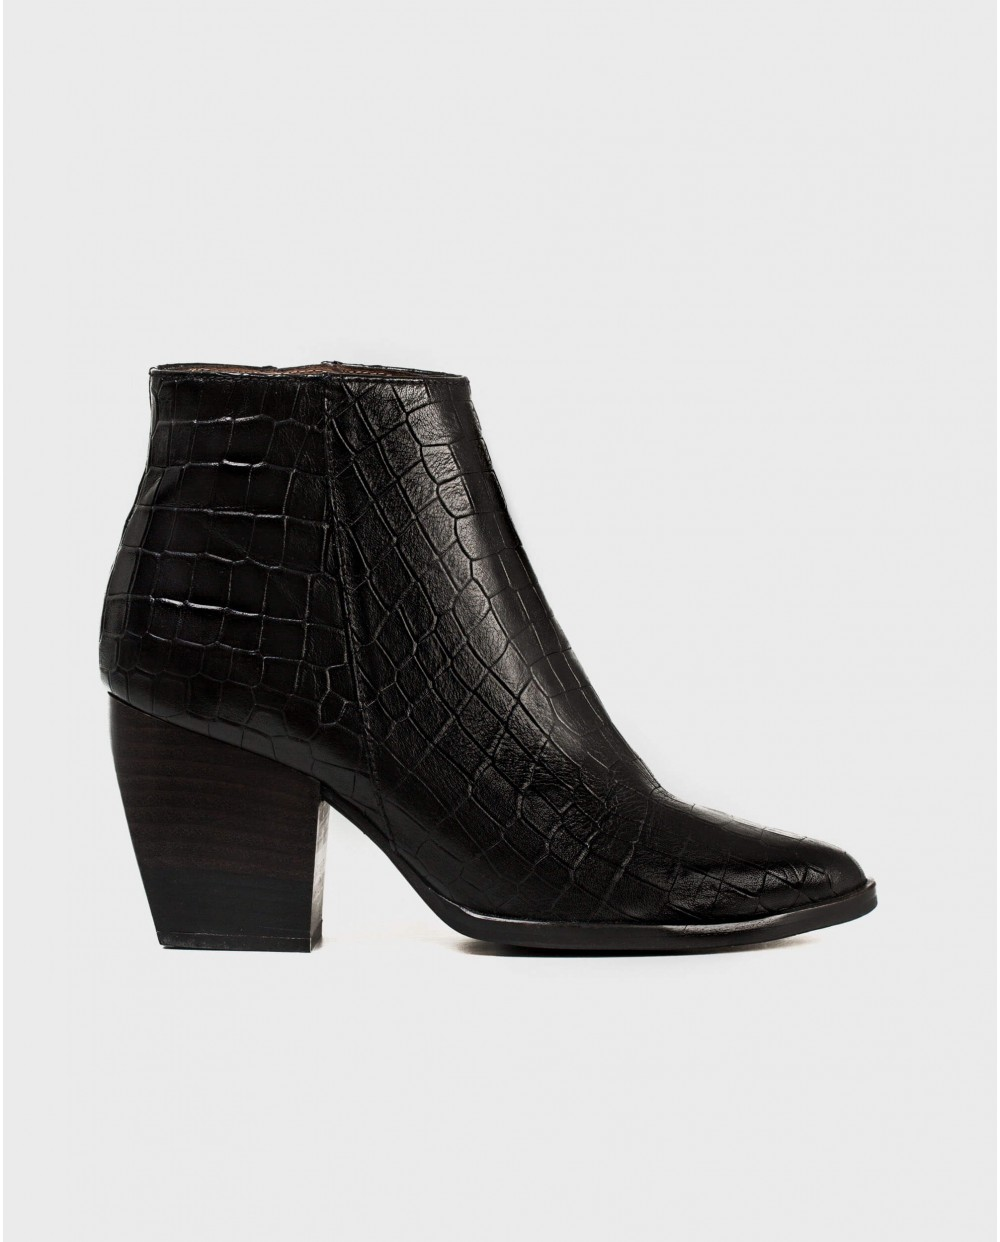 Wonders-Ankle Boots-mock croc leather ankle boot with a cowboy style heel